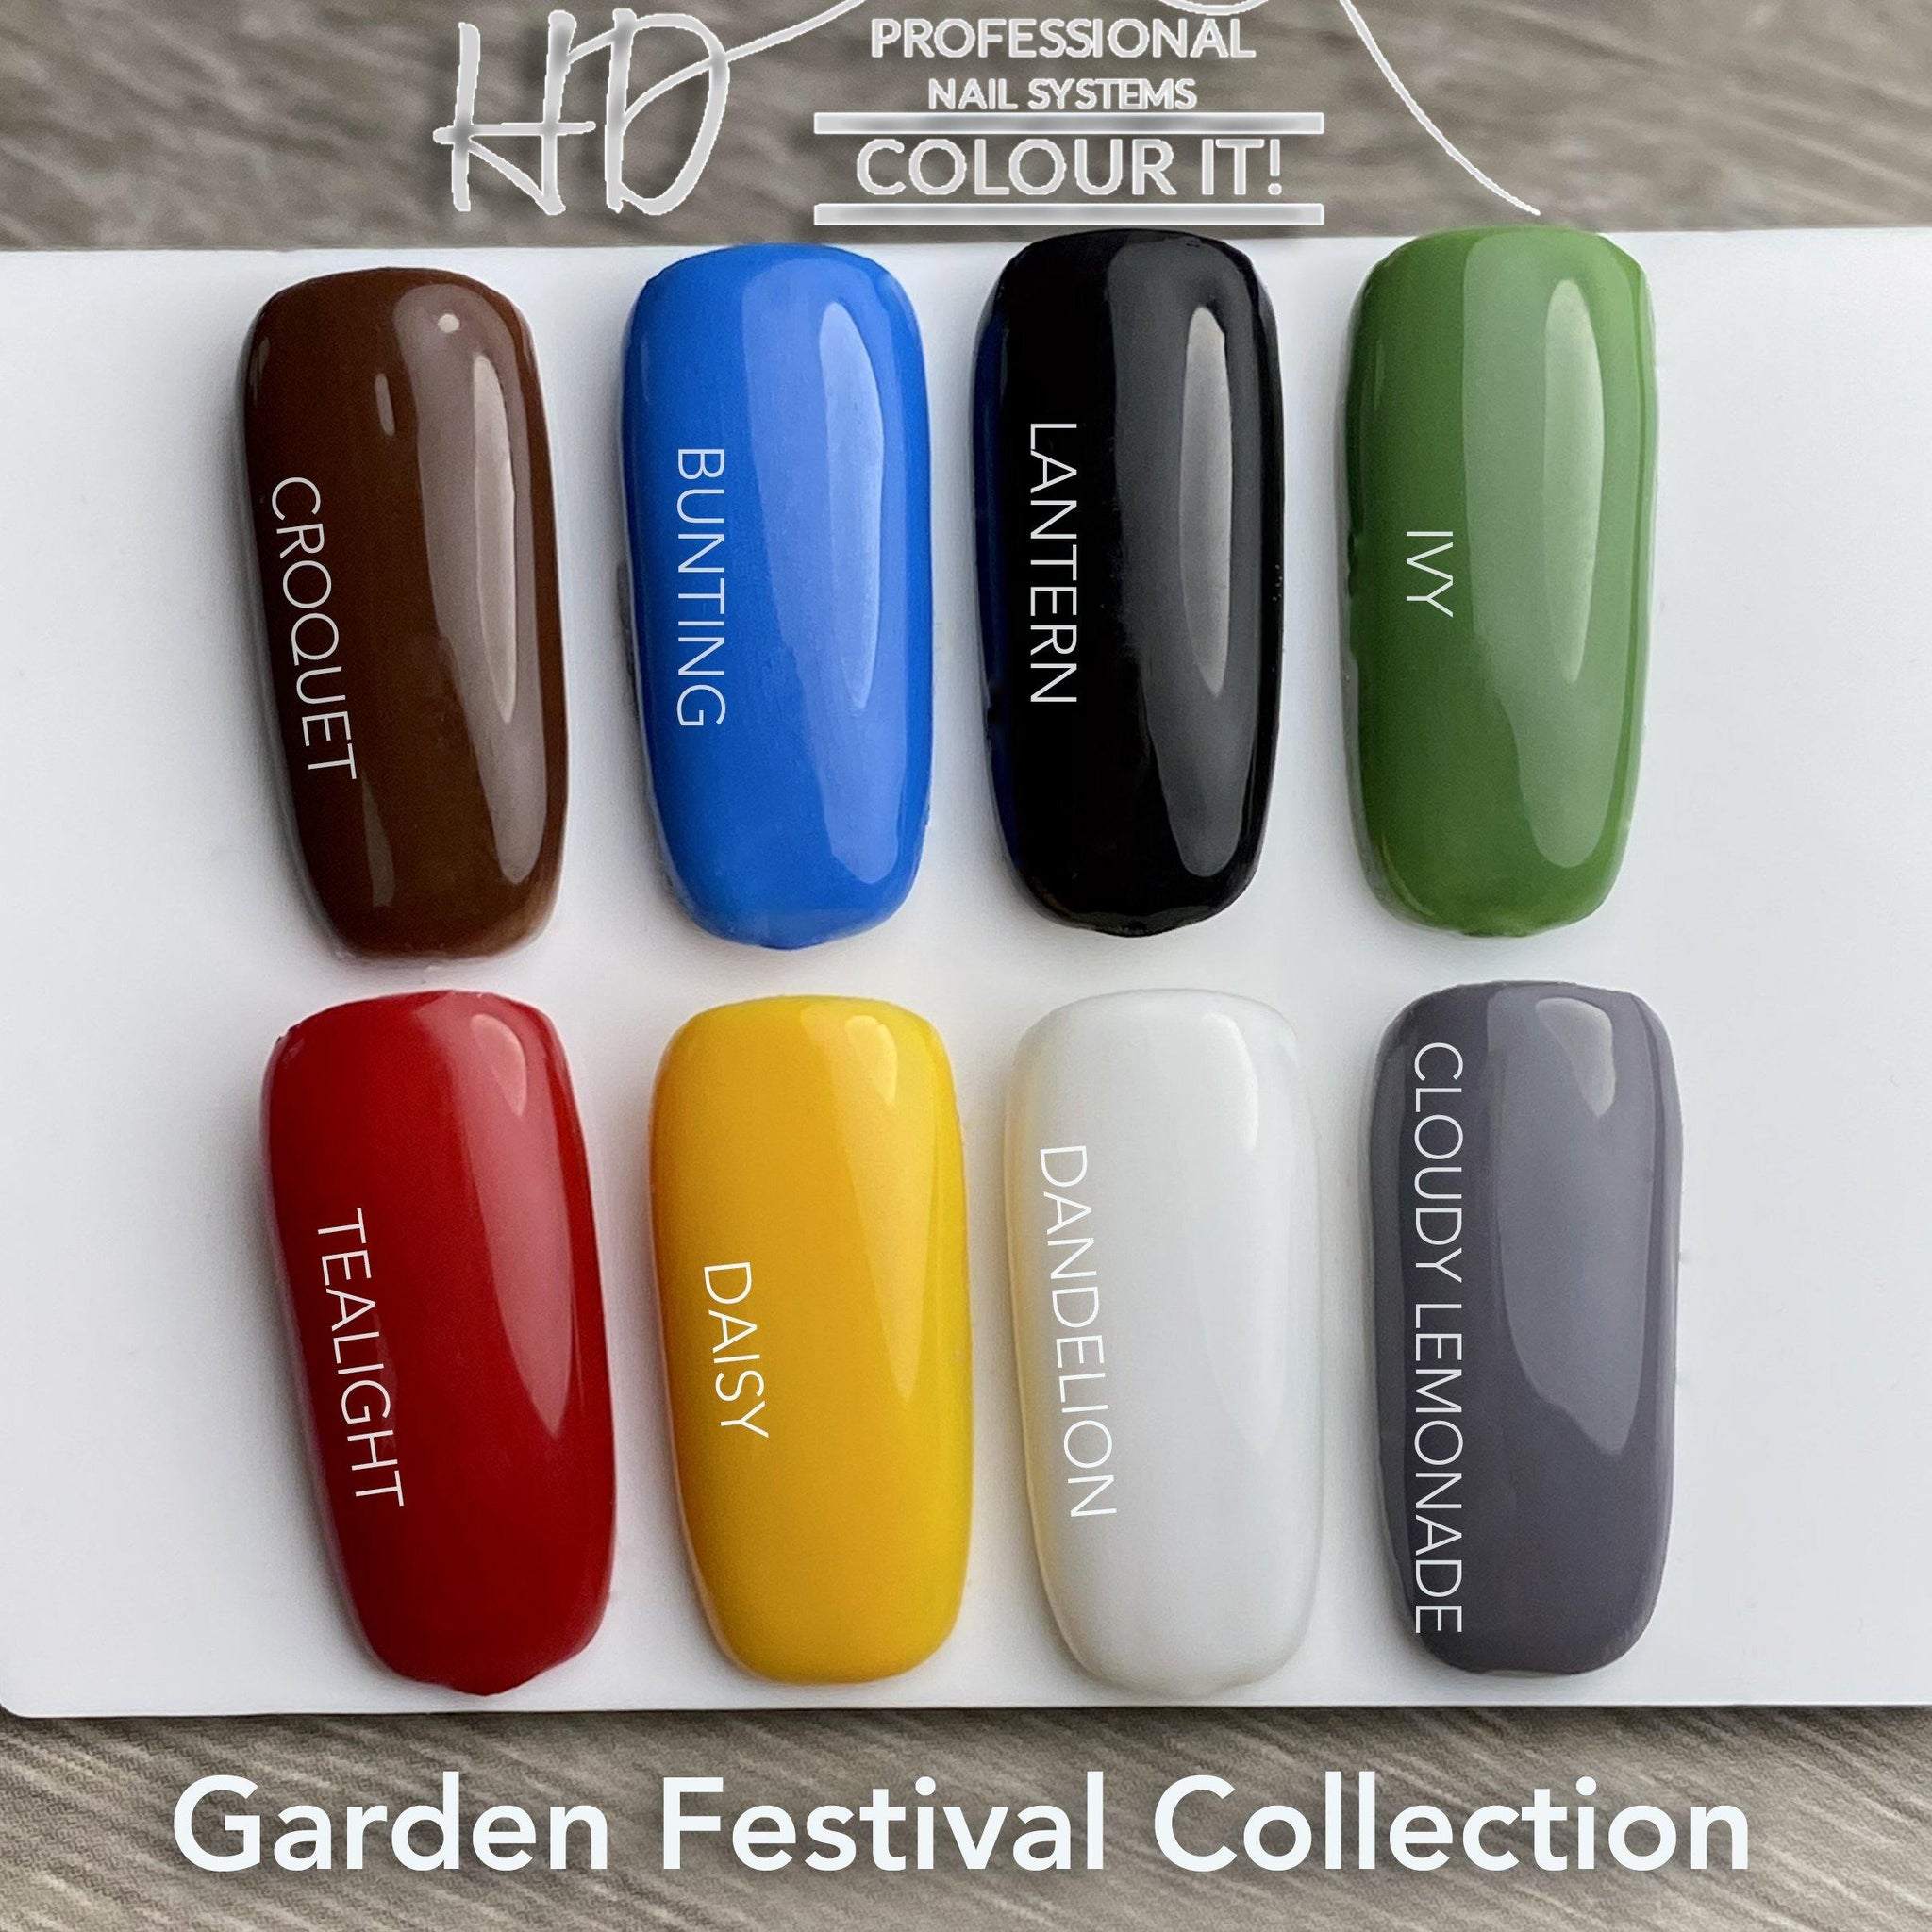 HD Colour It! Garden Festival Collection (all 8 colors 15ml)